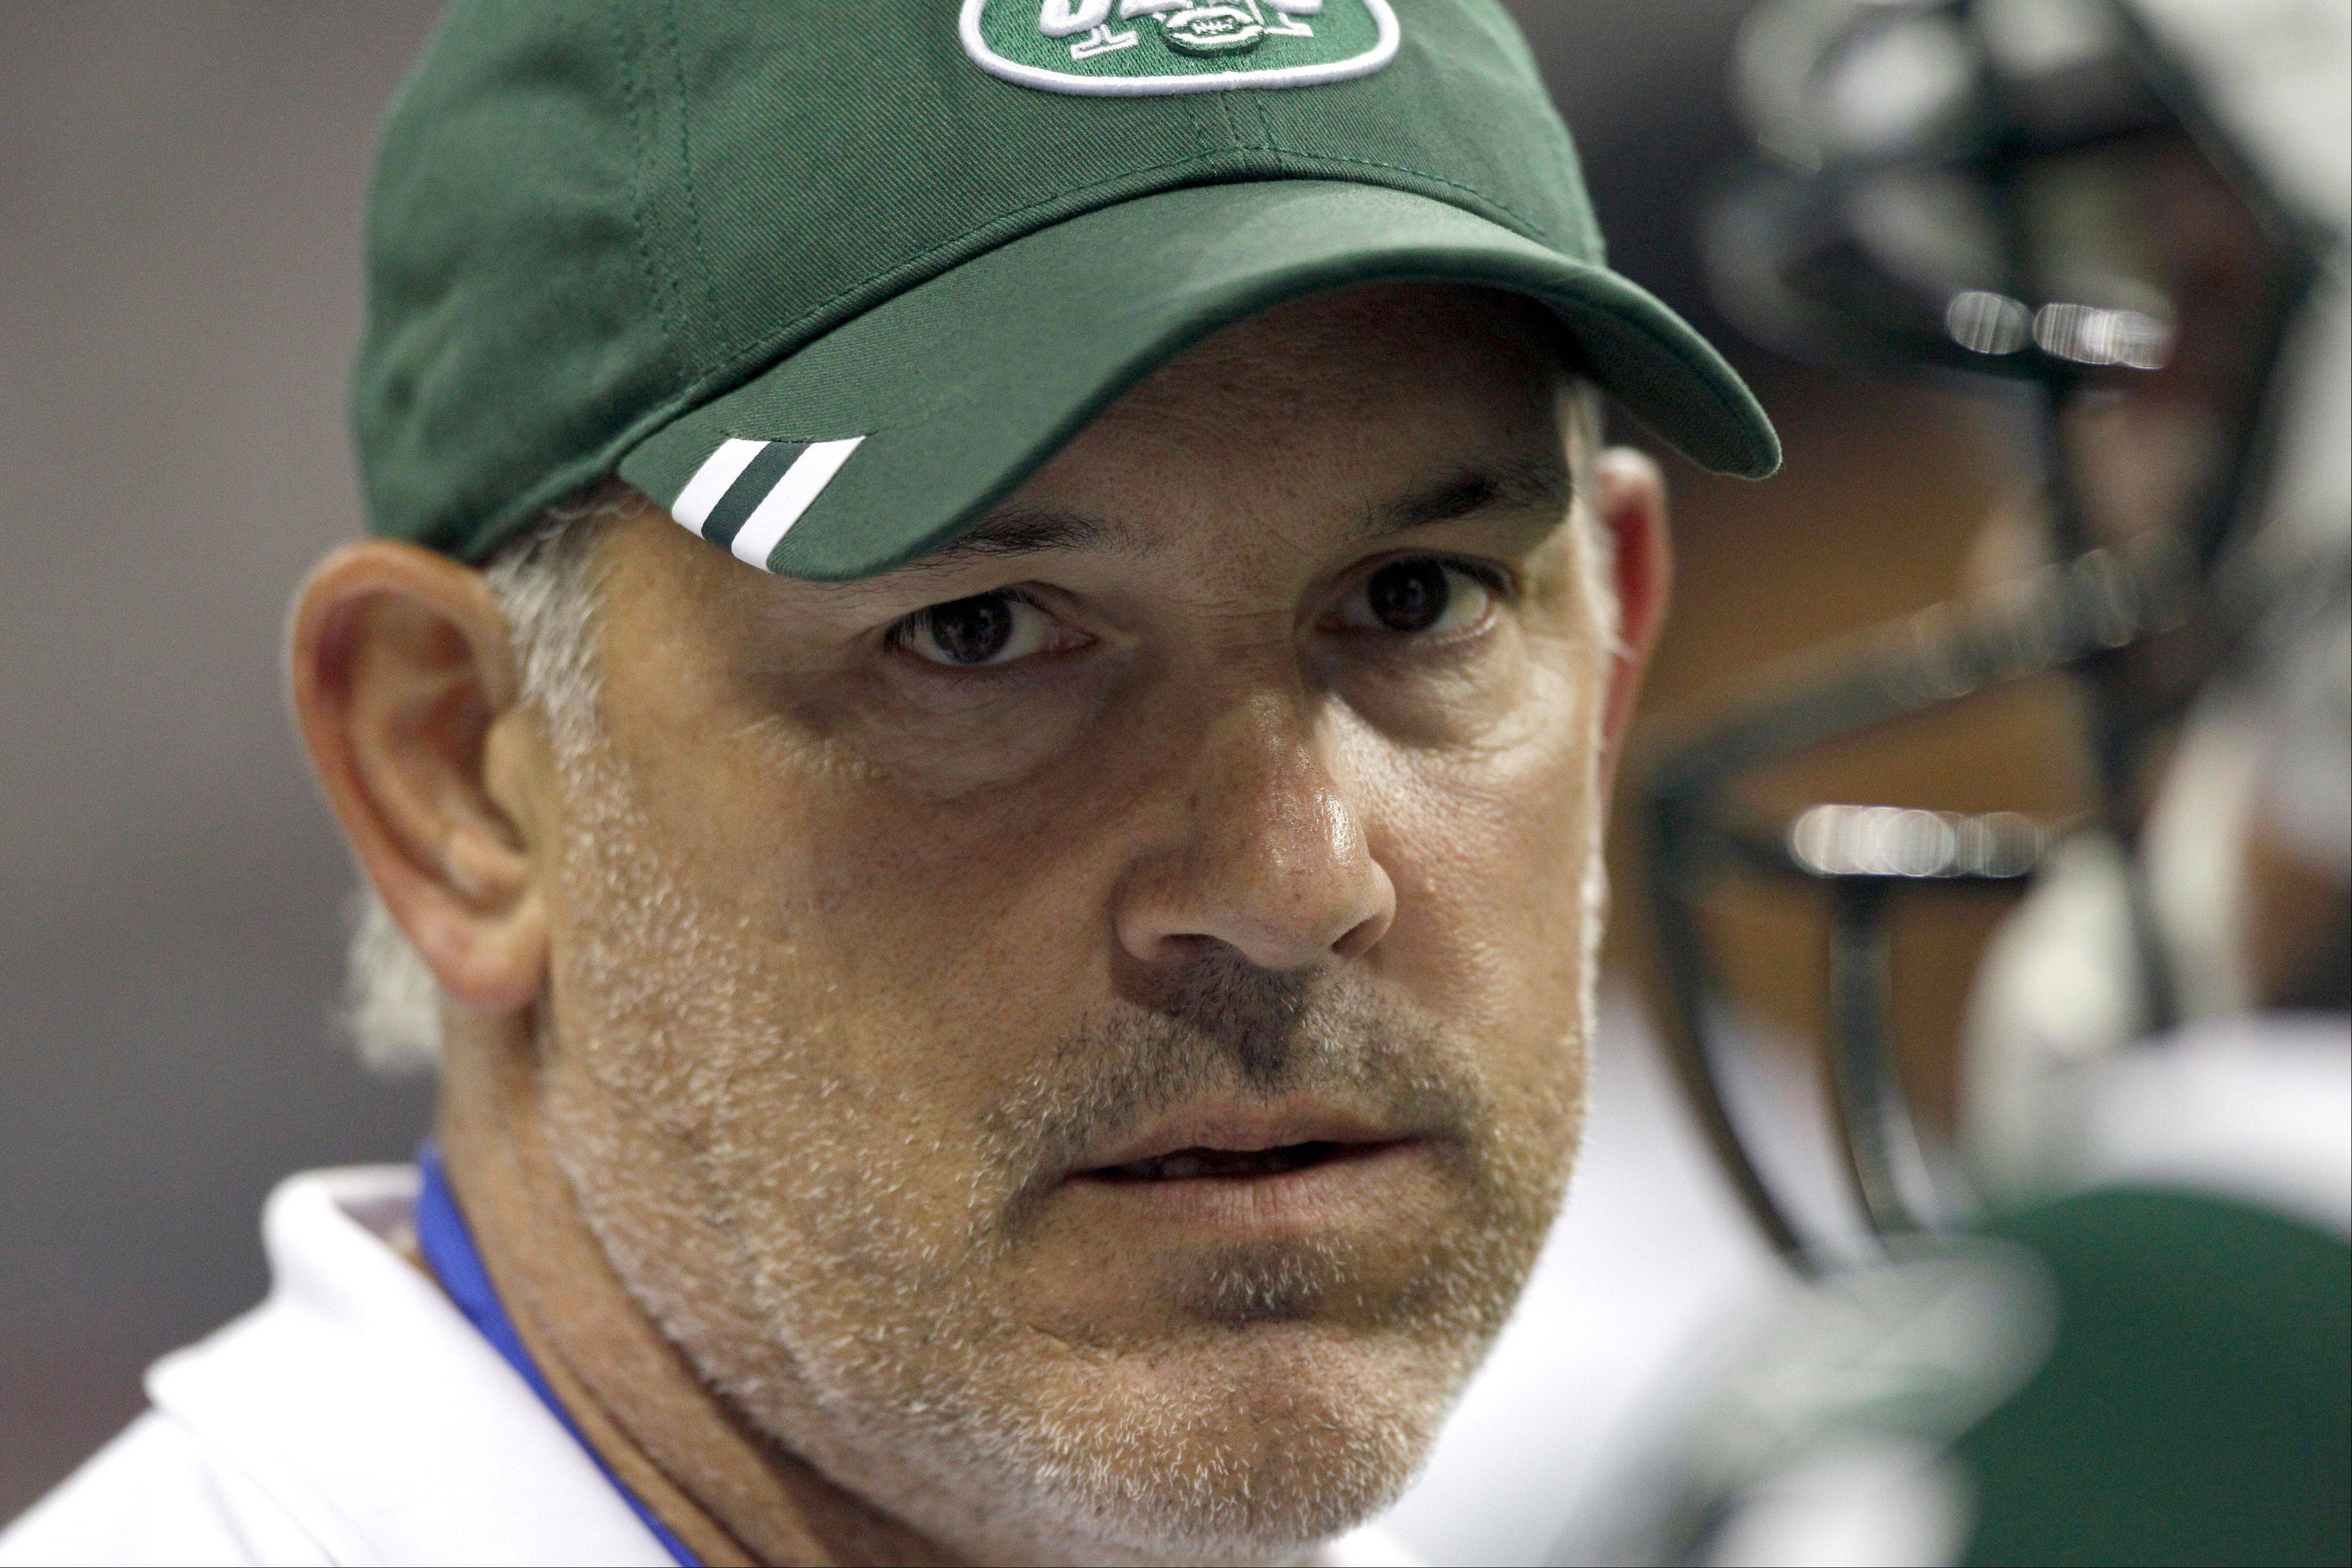 Former New York Jets quarterbacks coach Matt Cavanaugh has agreed to rejoin the Bears as the team's QB coach for the 2013 season. Cavanaugh was with the Bears in 1997 and 1998 as an offensive coordinator.